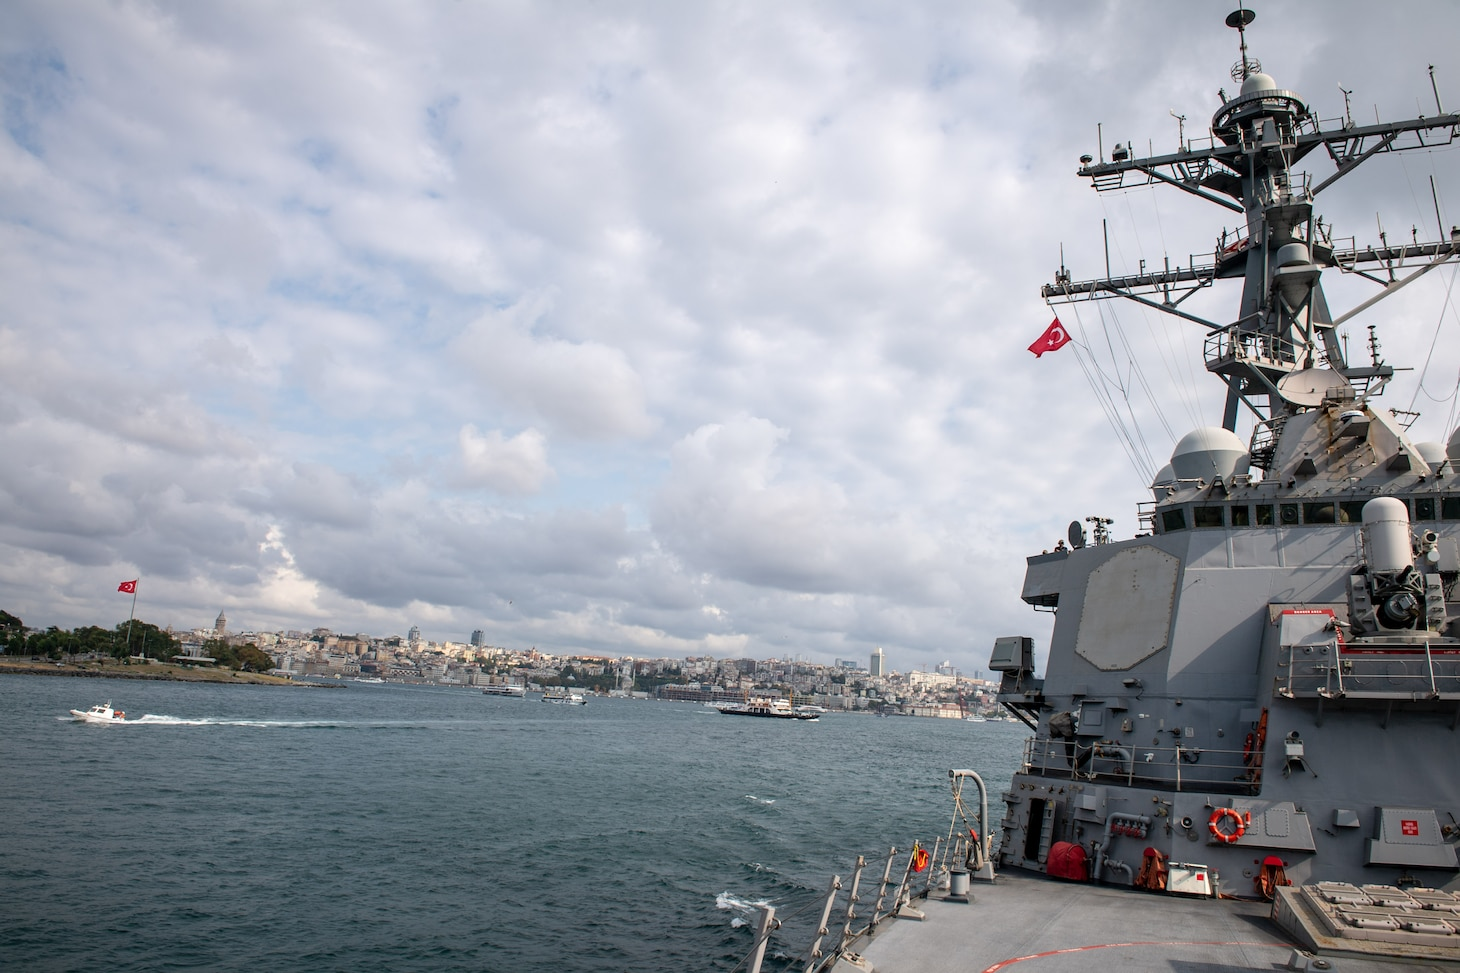 The Arleigh Burke-class guided-missile destroyer USS Porter (DDG 78) makes way to Golcuk, Turkey, for a scheduled port visit, Aug. 16, 2019.